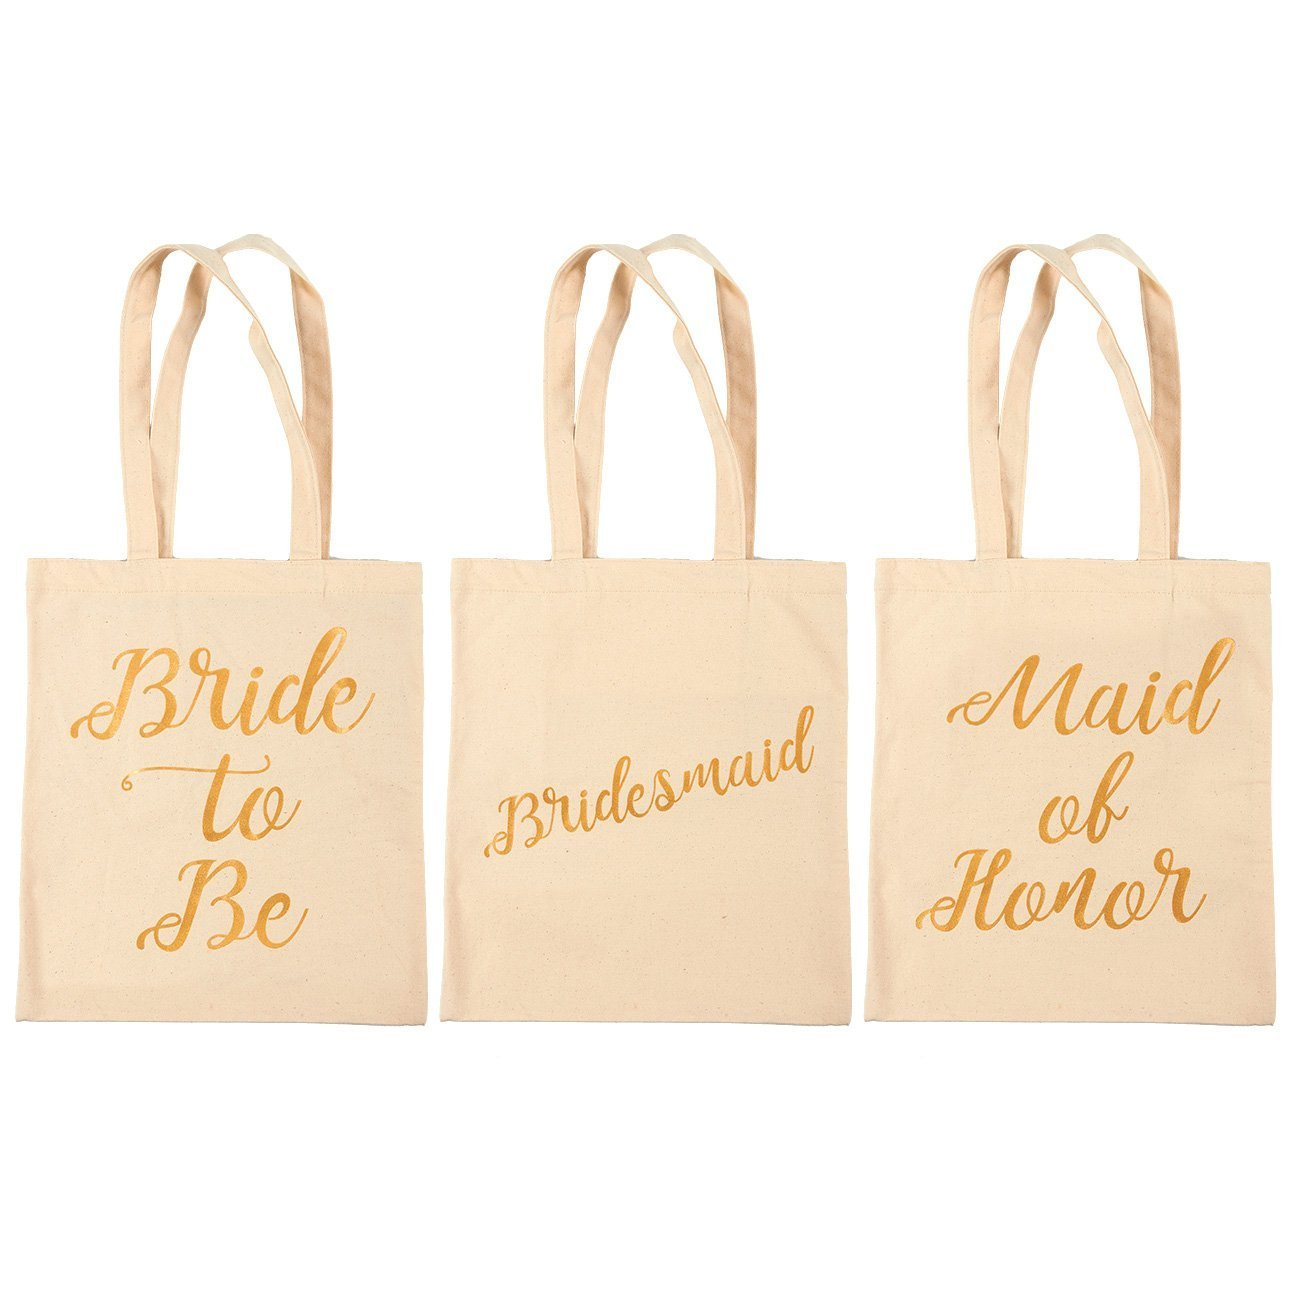 Bridal Shower Canvas Tote Bag - 5-Pack Reusable Shopping Bags for Wedding Favors, Bachelorette Party Gifts, and Bridal Shower Accessories 13.5 x 12 Inches by Blue Panda (Image #7)